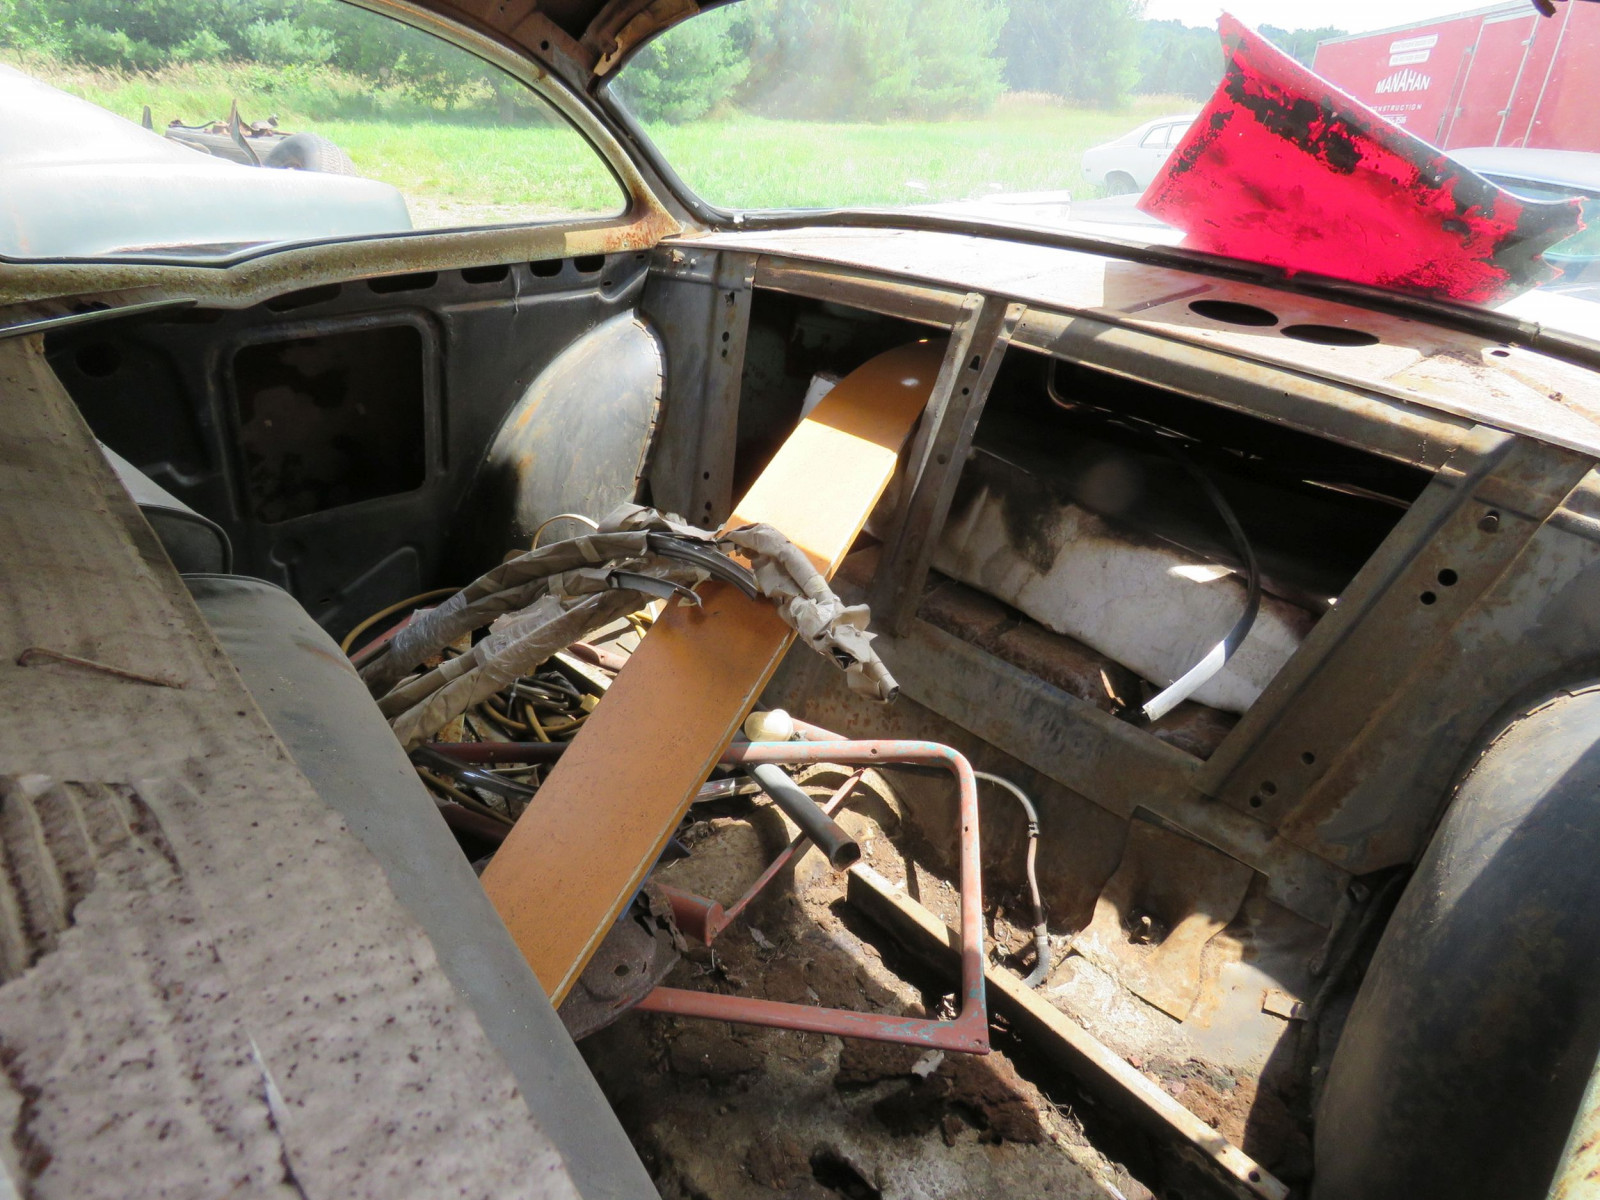 1957 Chevrolet 2dr Sedan for Rod or Restore - Image 7